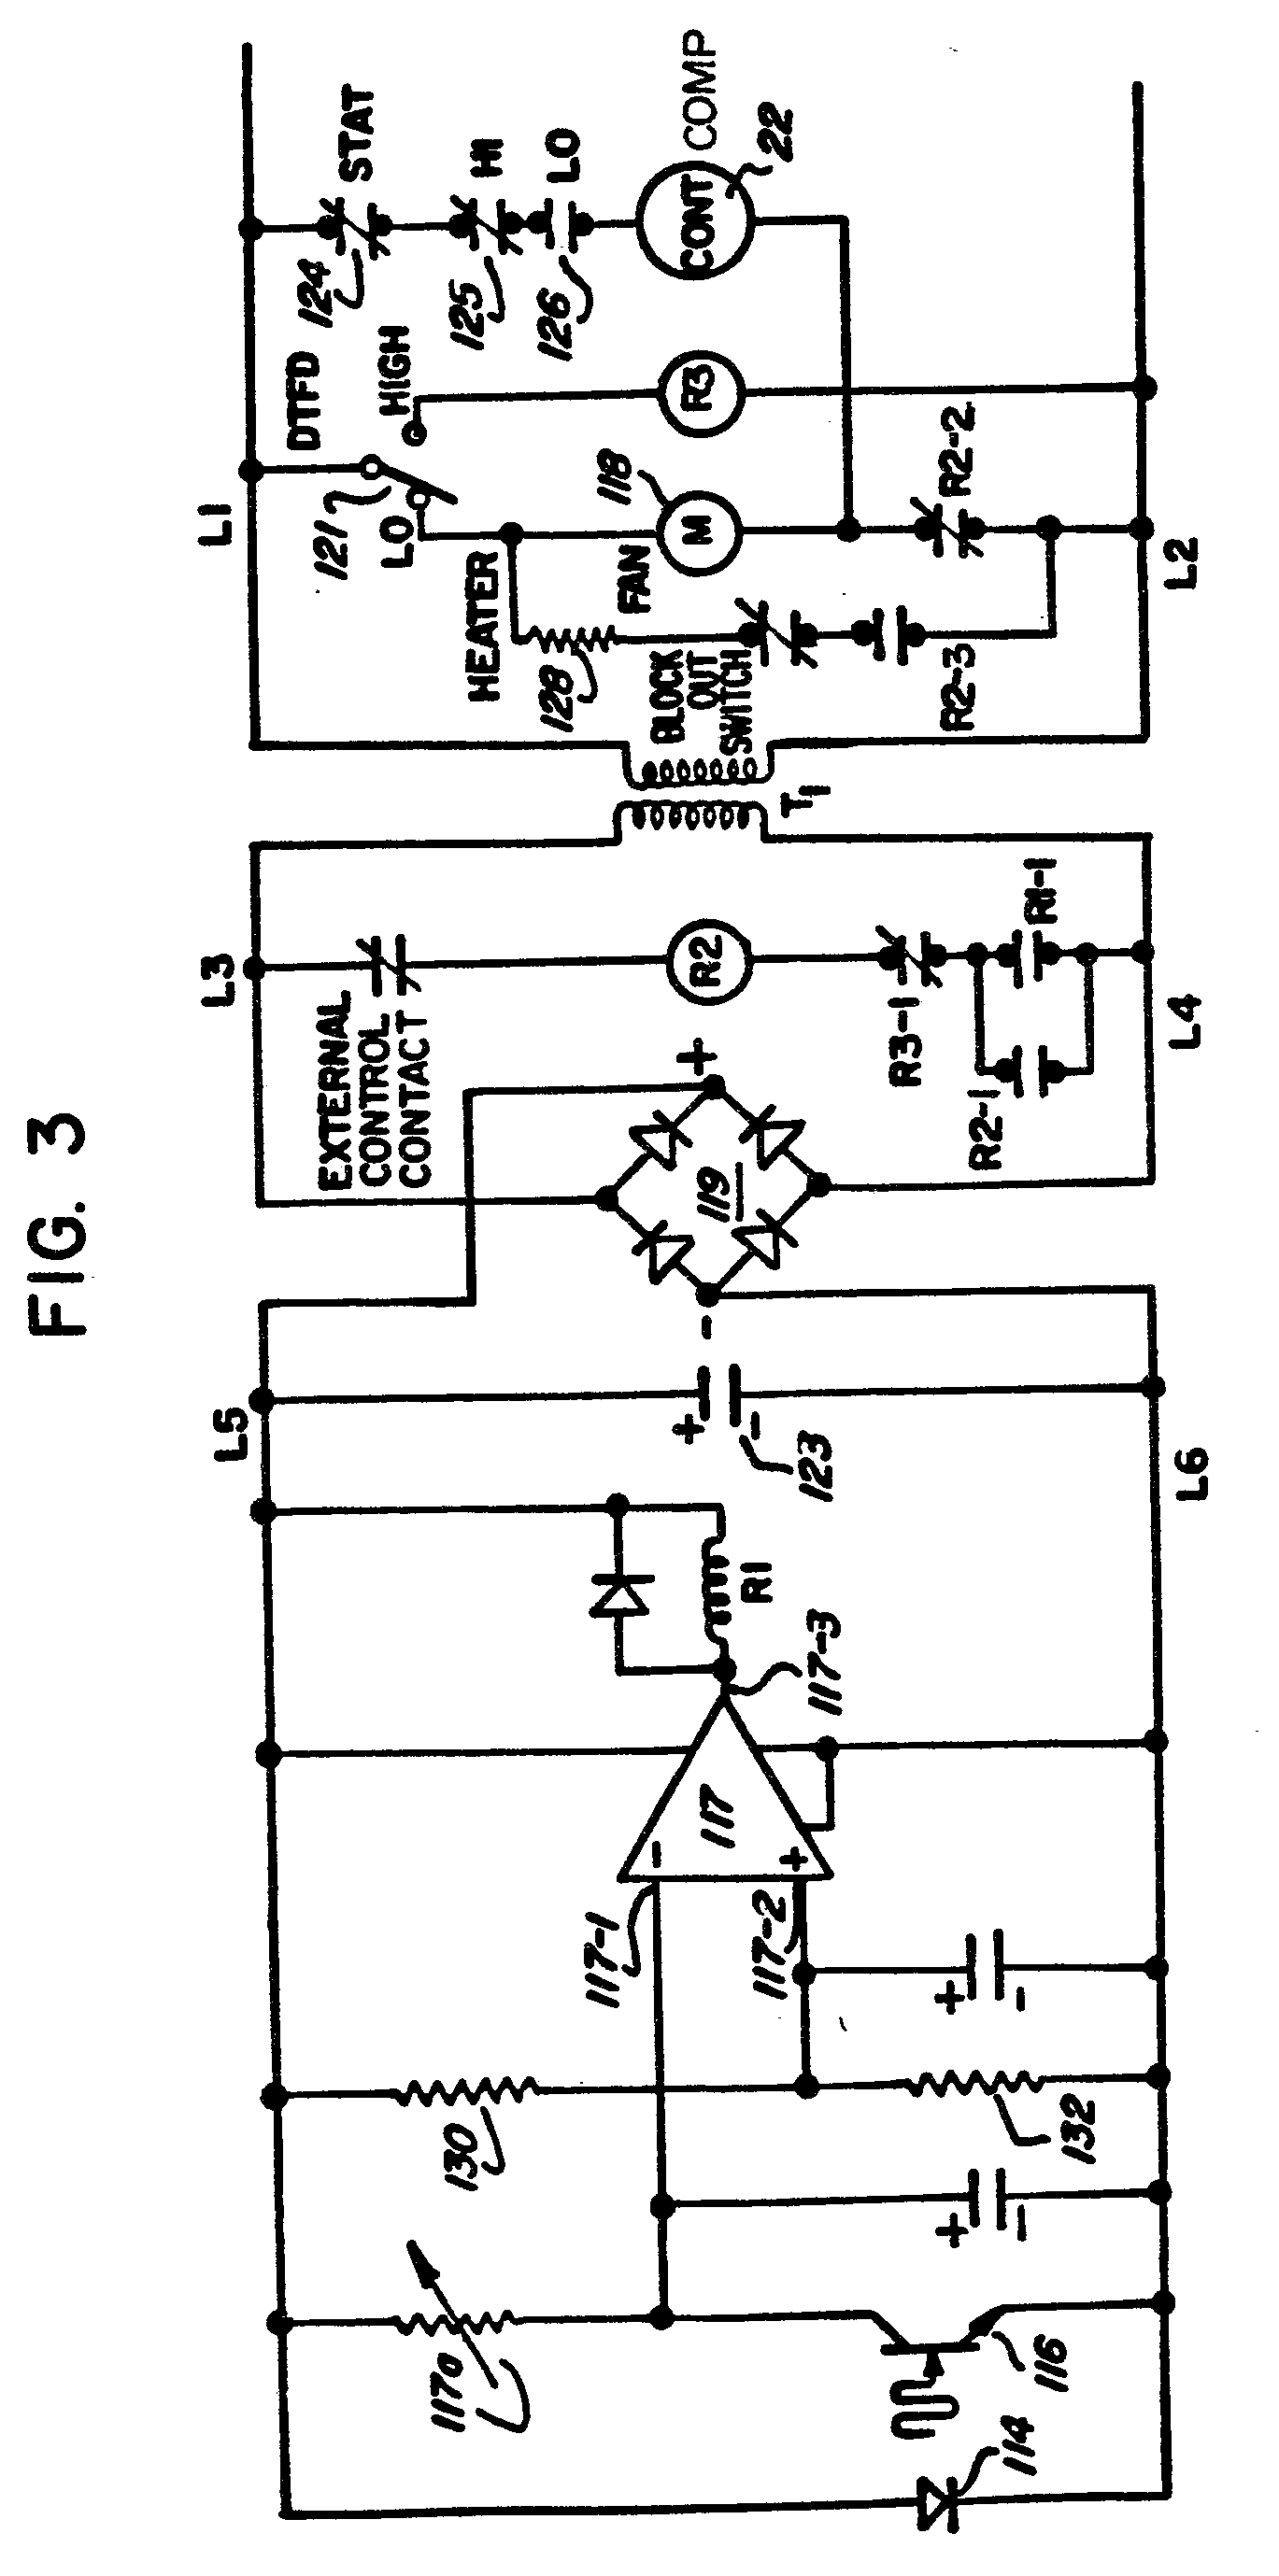 Defrost Termination Fan Delay Switch Wiring Diagram : 51